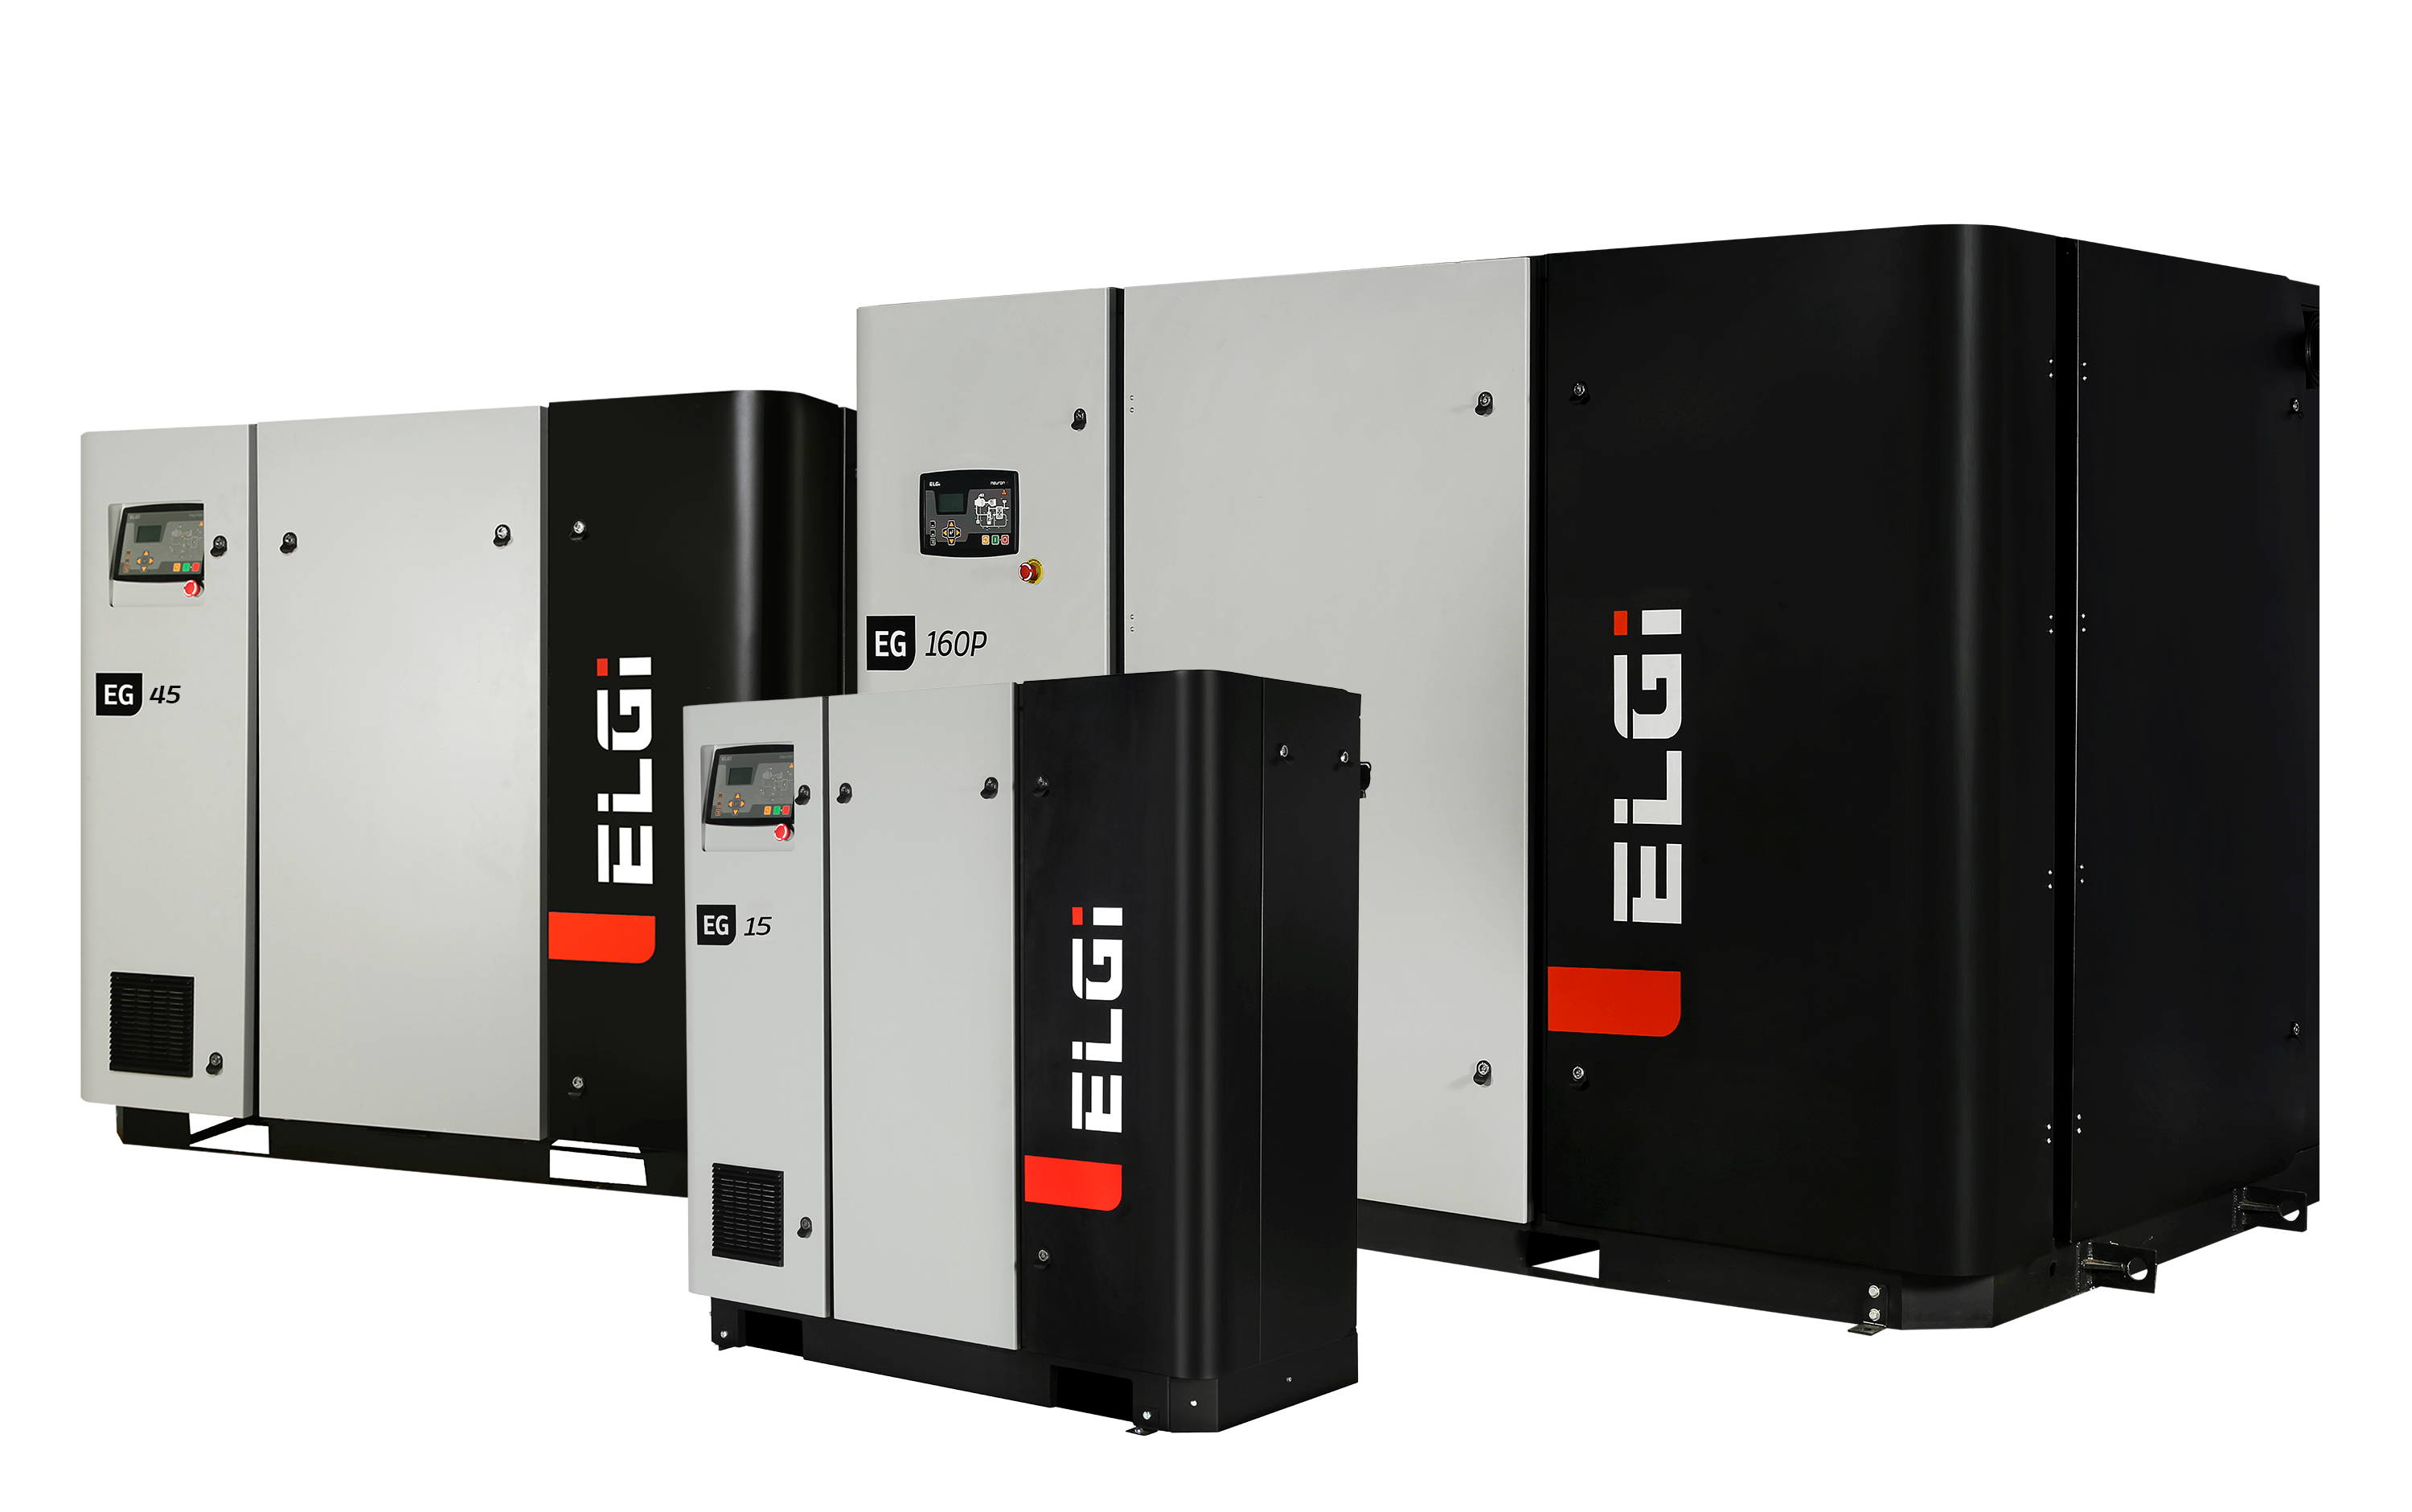 EG-Series-–-Direct-drive-Screw-Compressors-11kW-to-250kW.png